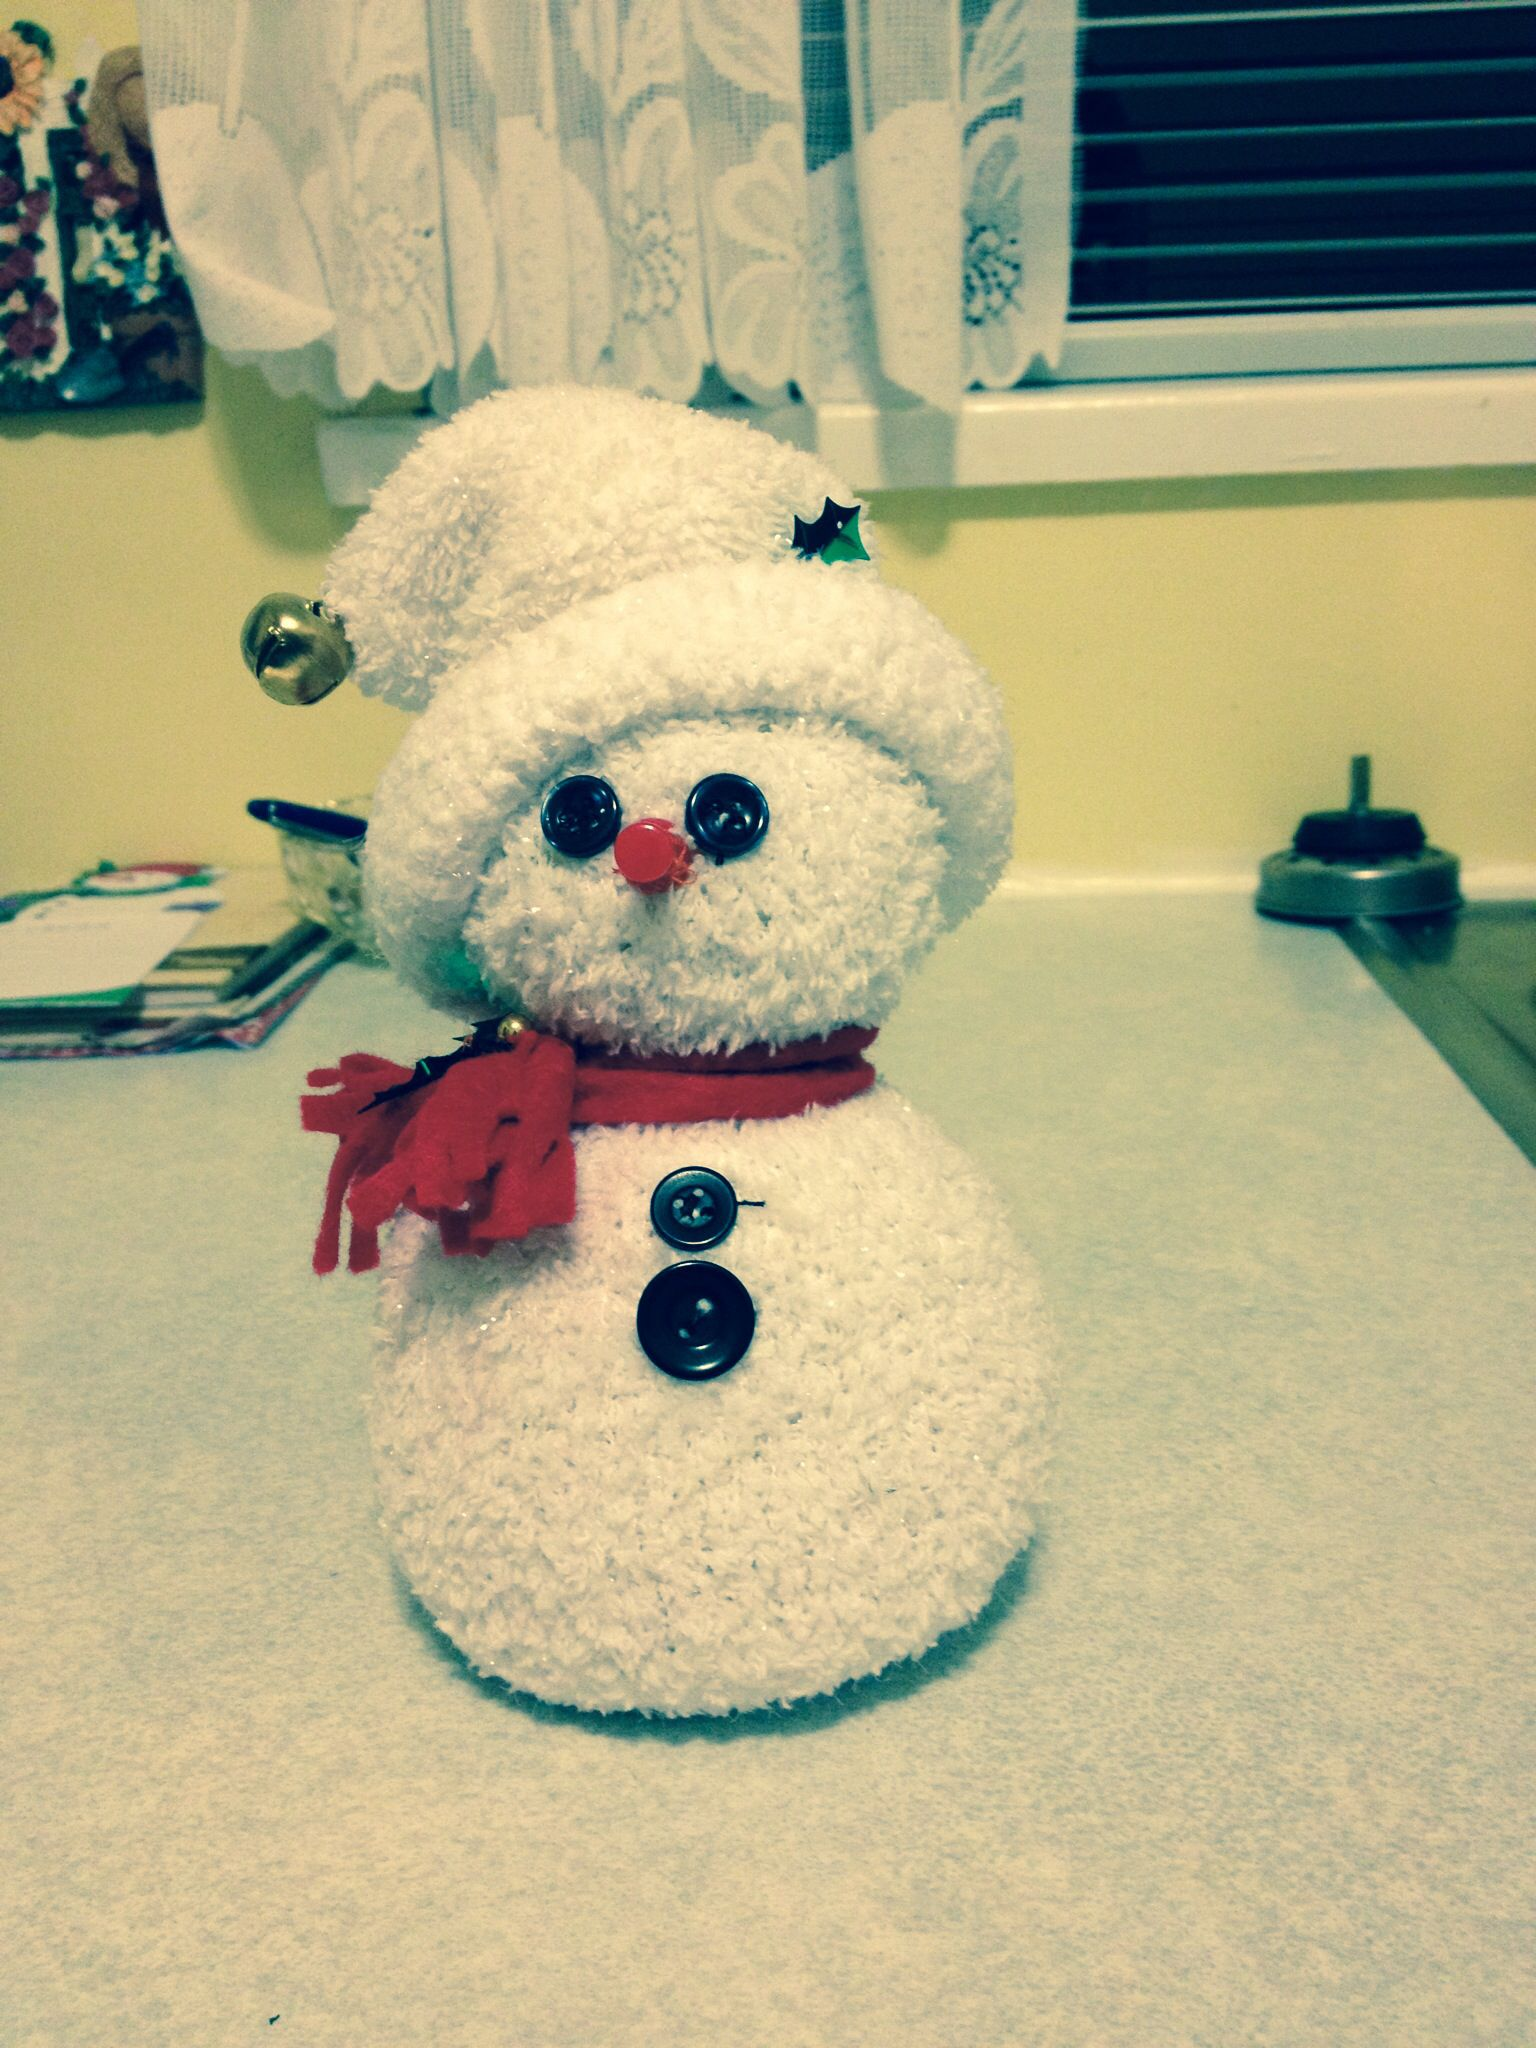 Snowman Made From Rice And A Sock Christmas Crafts Snowman Snowman Christmas Decorations Christmas Projects For Kids